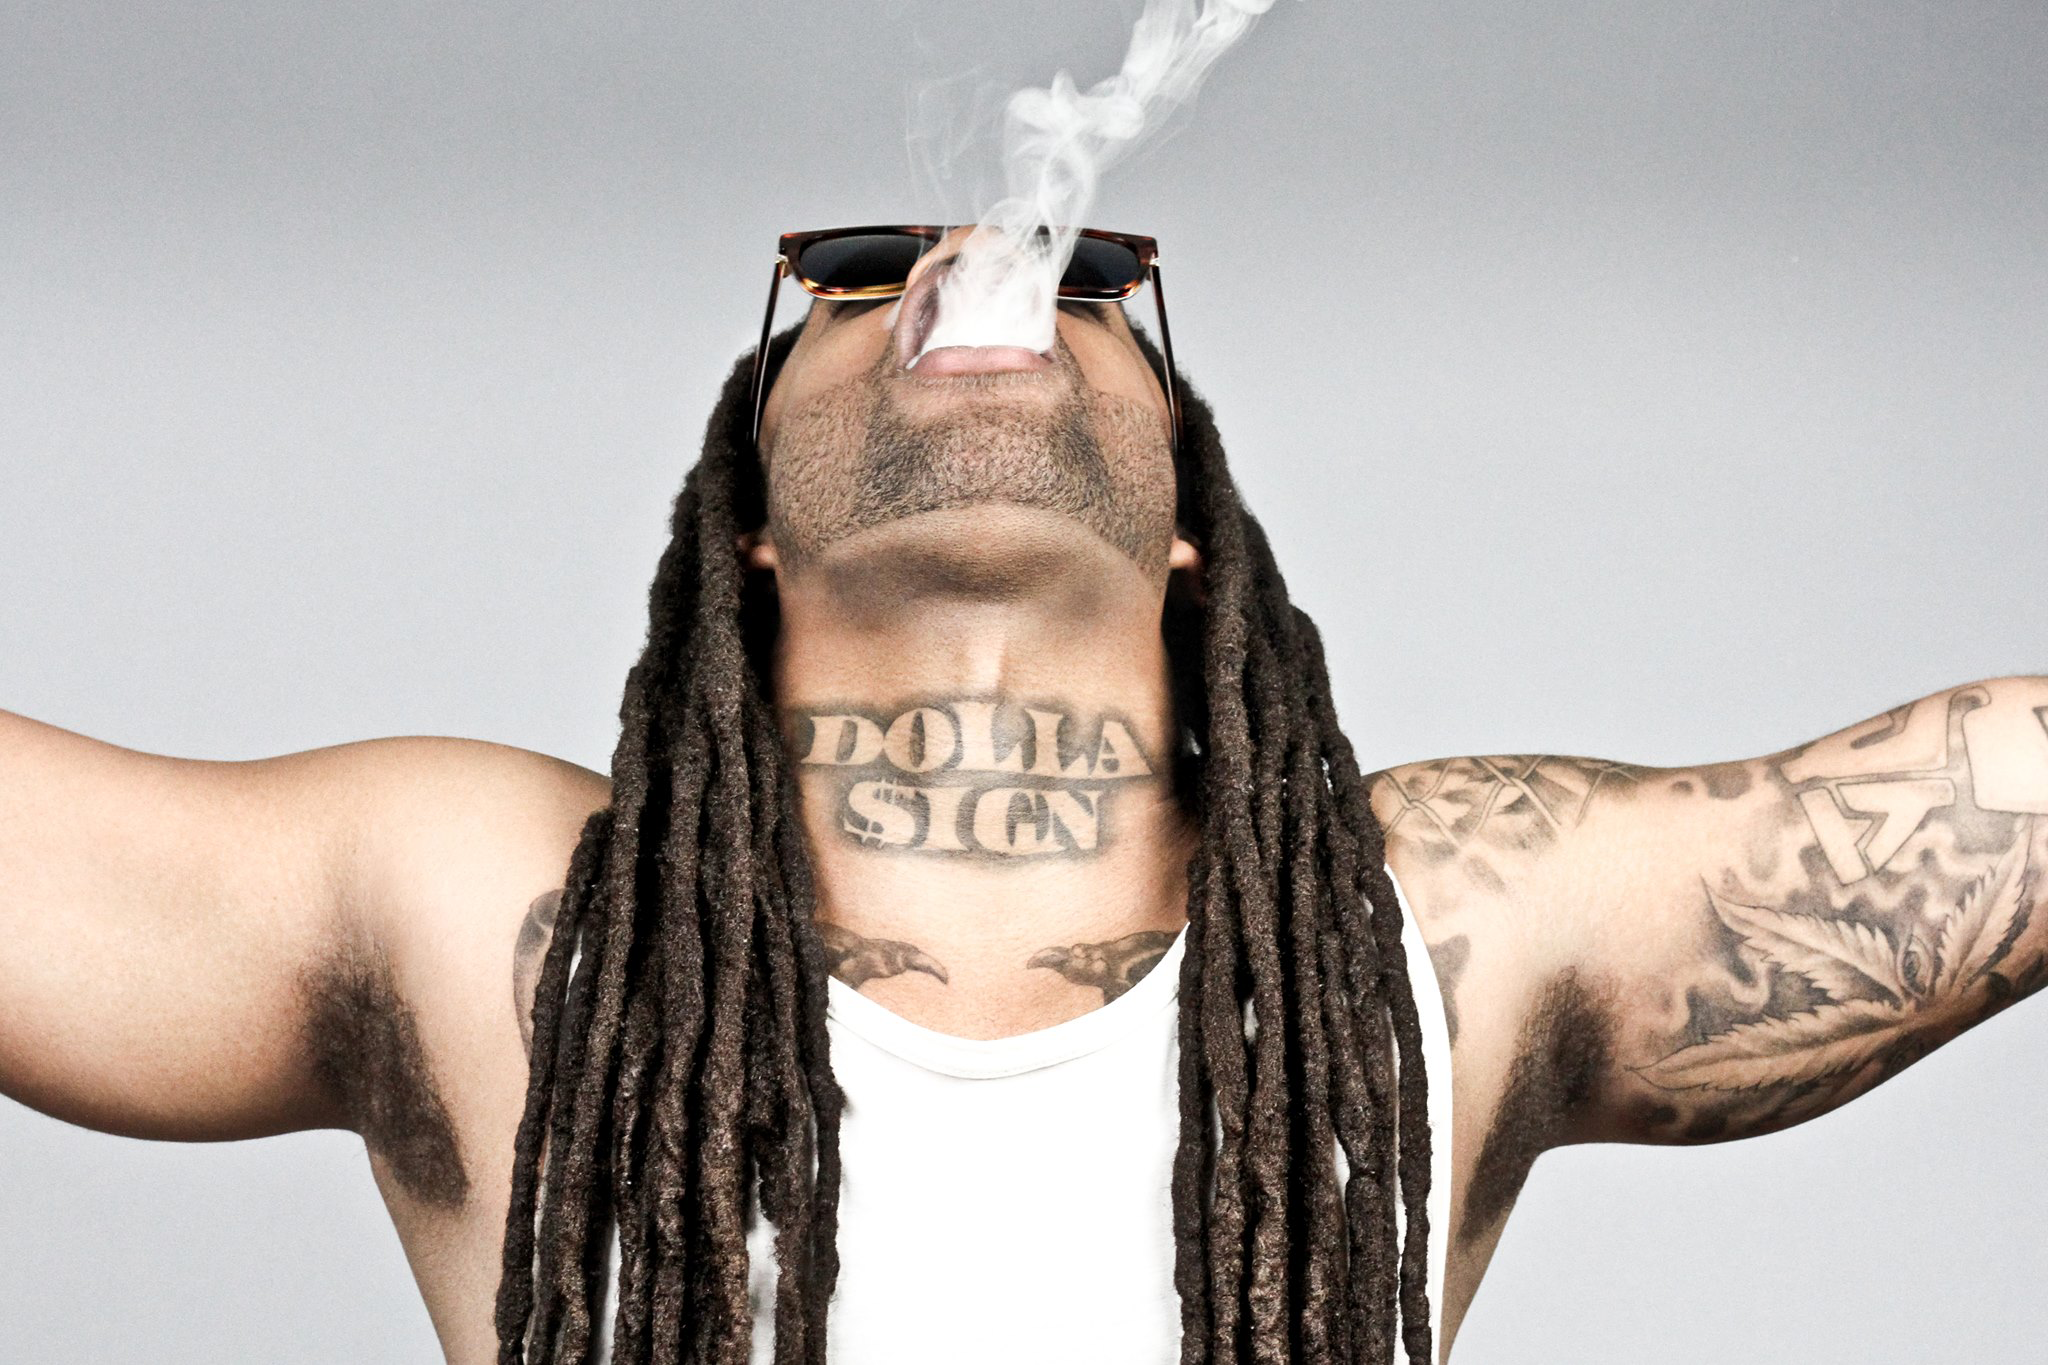 paranoid ty dolla sign lyrics - photo #34